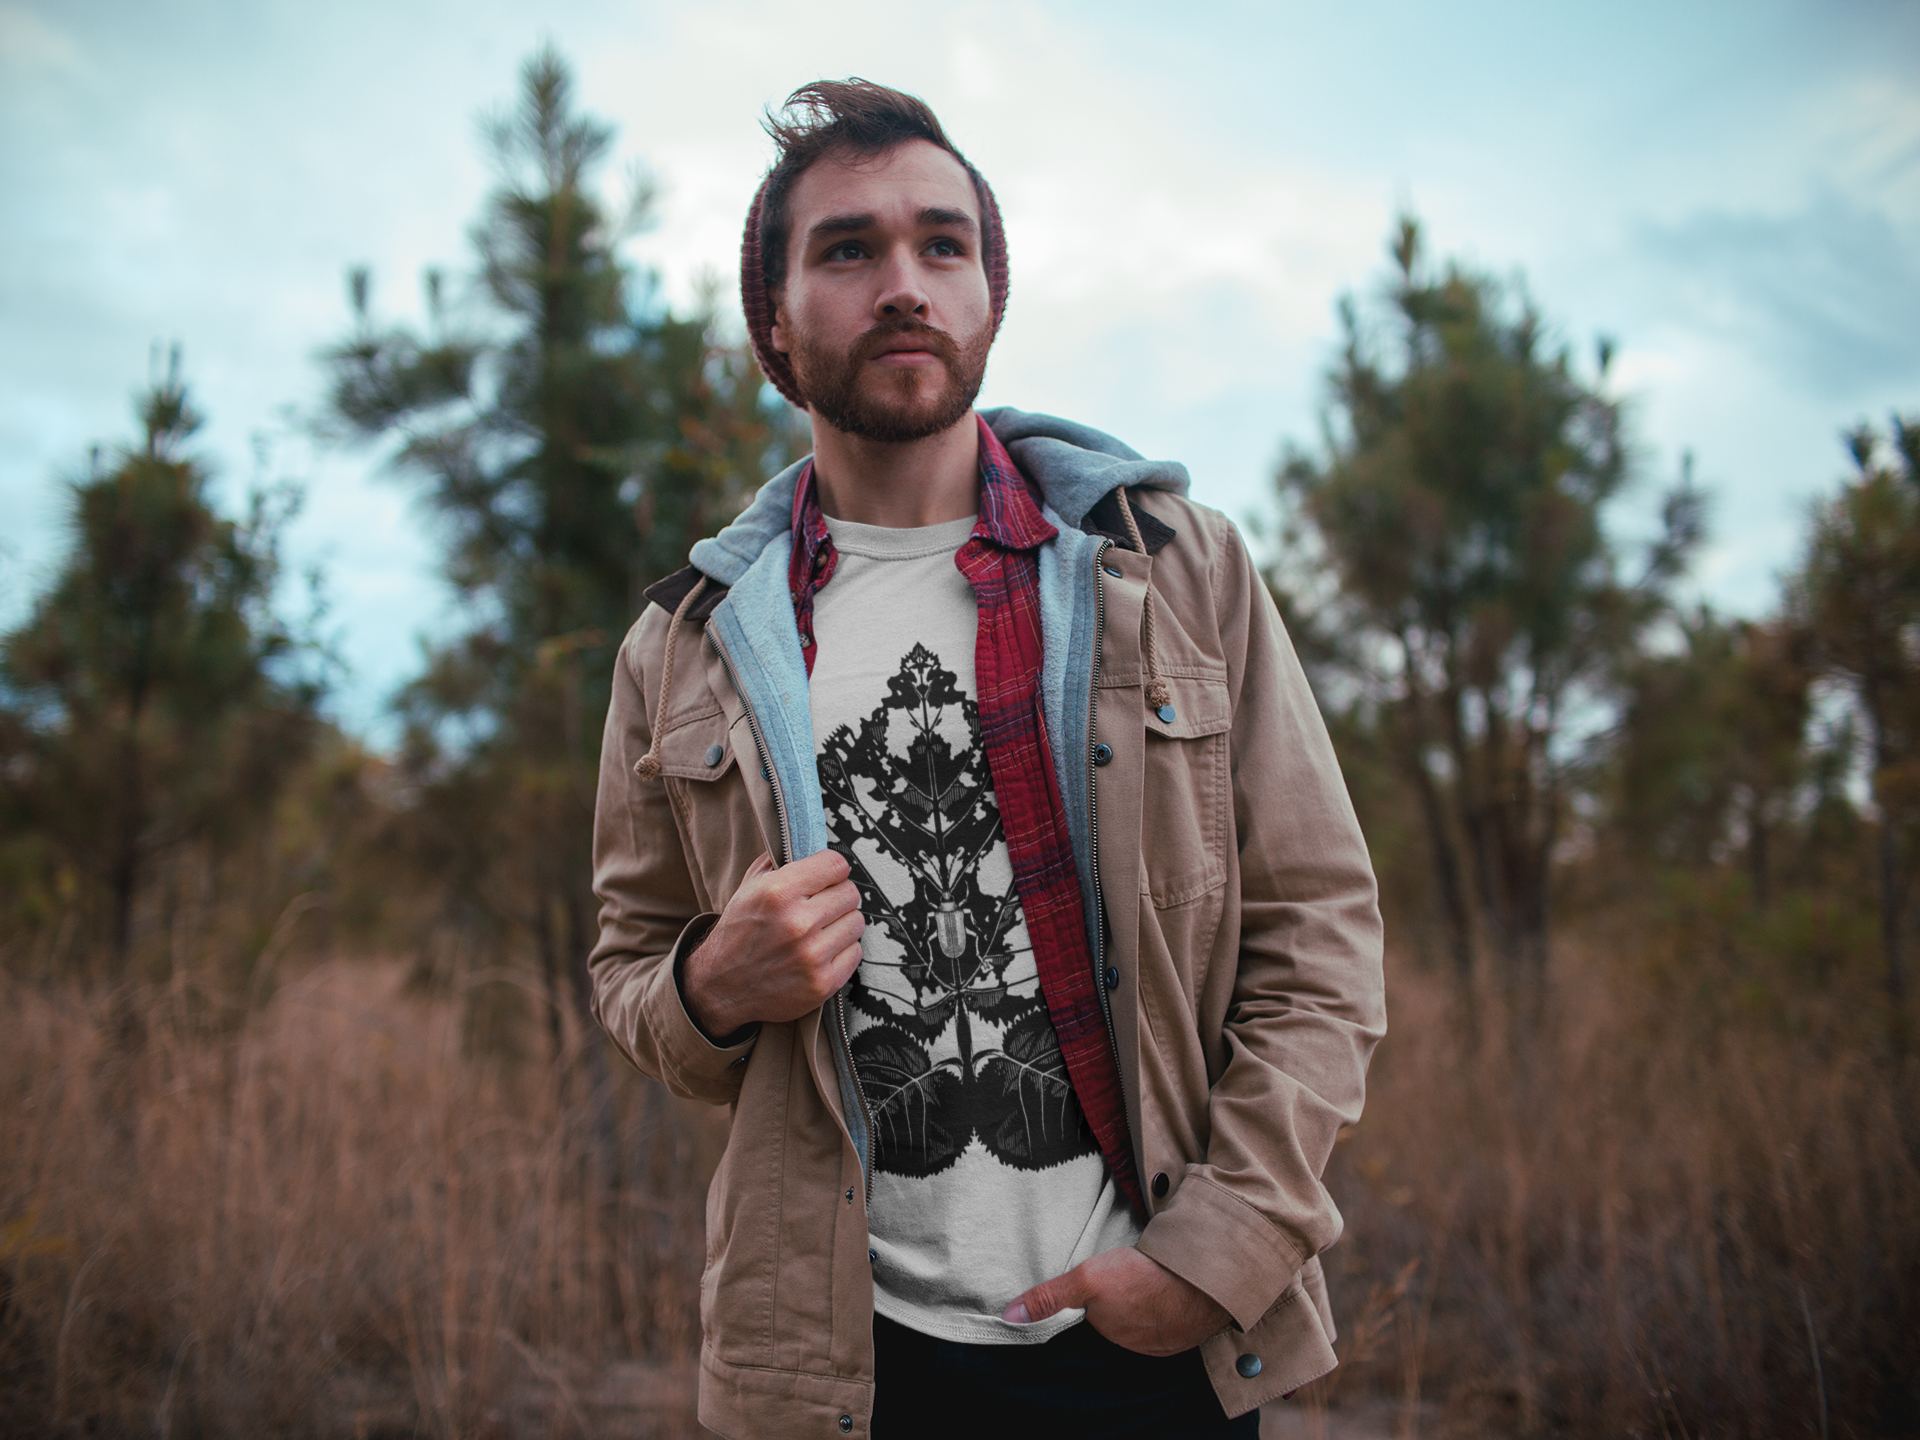 dude-with-beard-wearing-a-tshirt-mockup-watching-the-landscape-outdoors-a19030.png